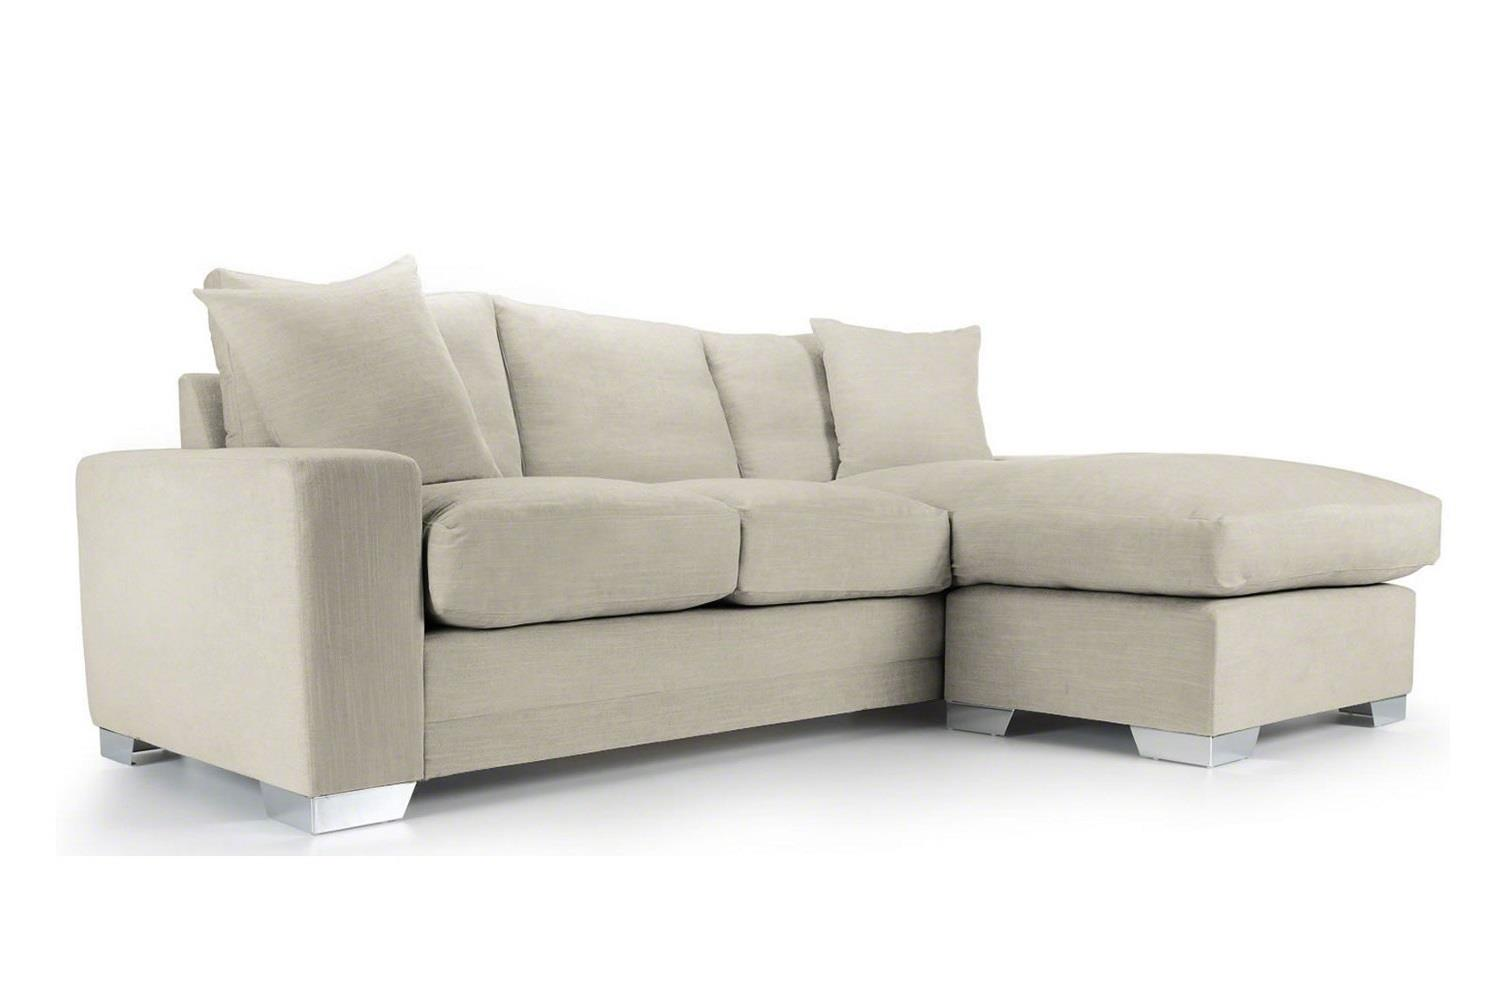 The Chelsea Luxury Chaise Corner Sofa Beds At Just British Sofas 3 Sc 1 St Just British Sofas  sc 1 st  Sectionals Sofas u0026 Couches : corner sofa bed chaise - Sectionals, Sofas & Couches